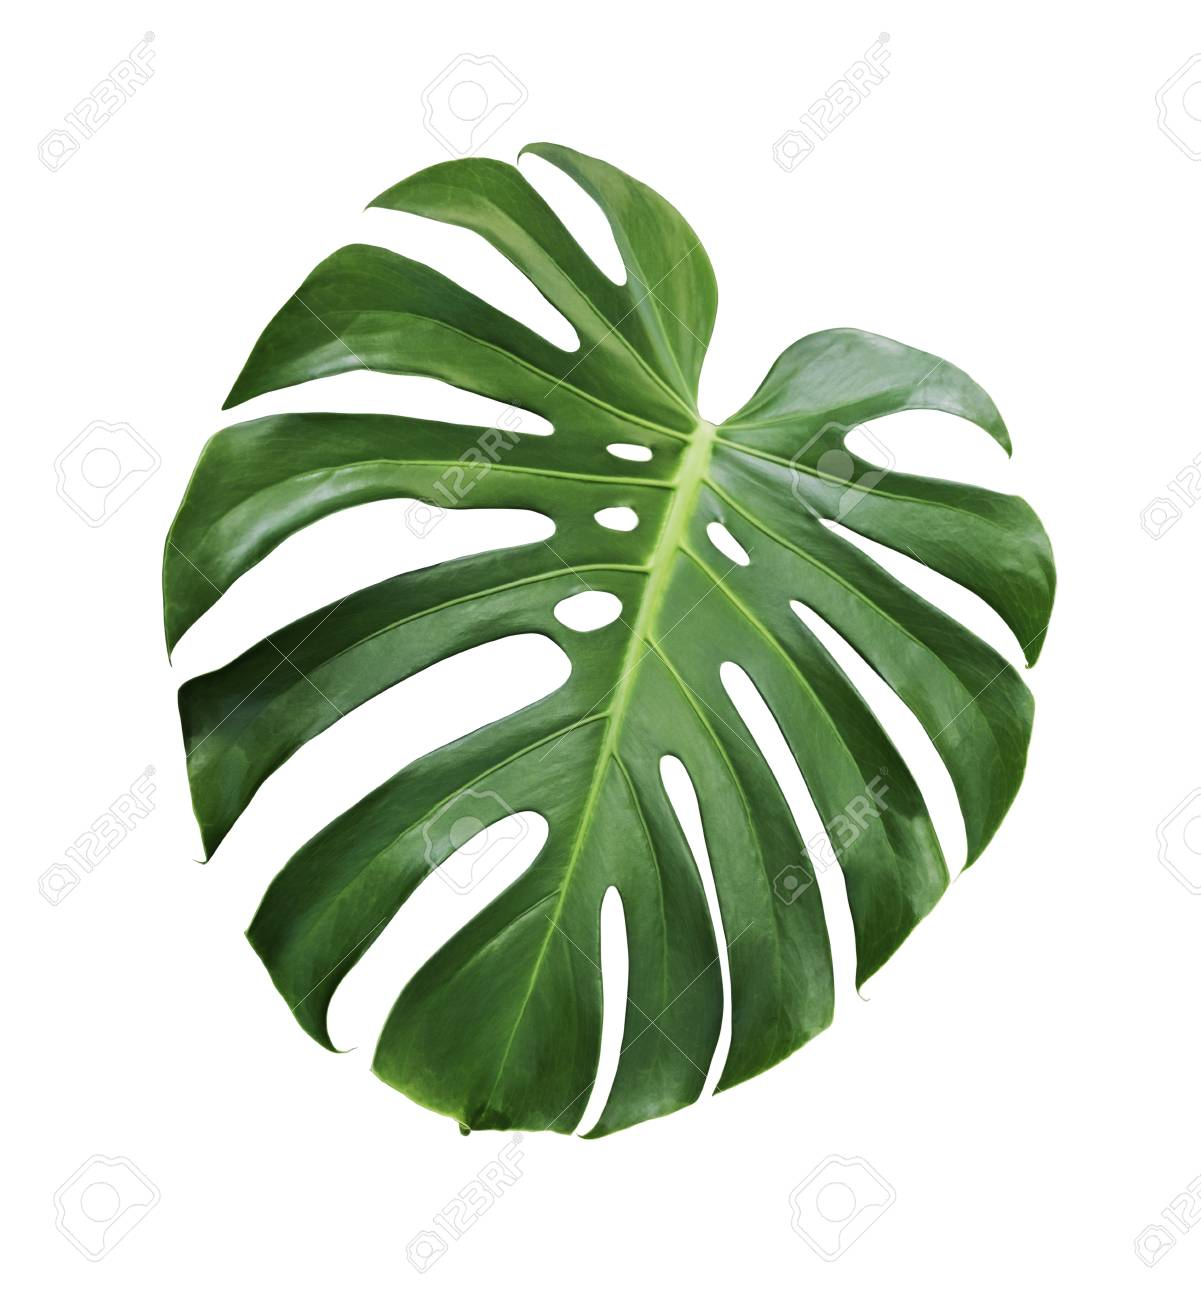 Monstera Deliciosa Tropical Leaf Isolated On White Background Stock Photo Picture And Royalty Free Image Image 98431545